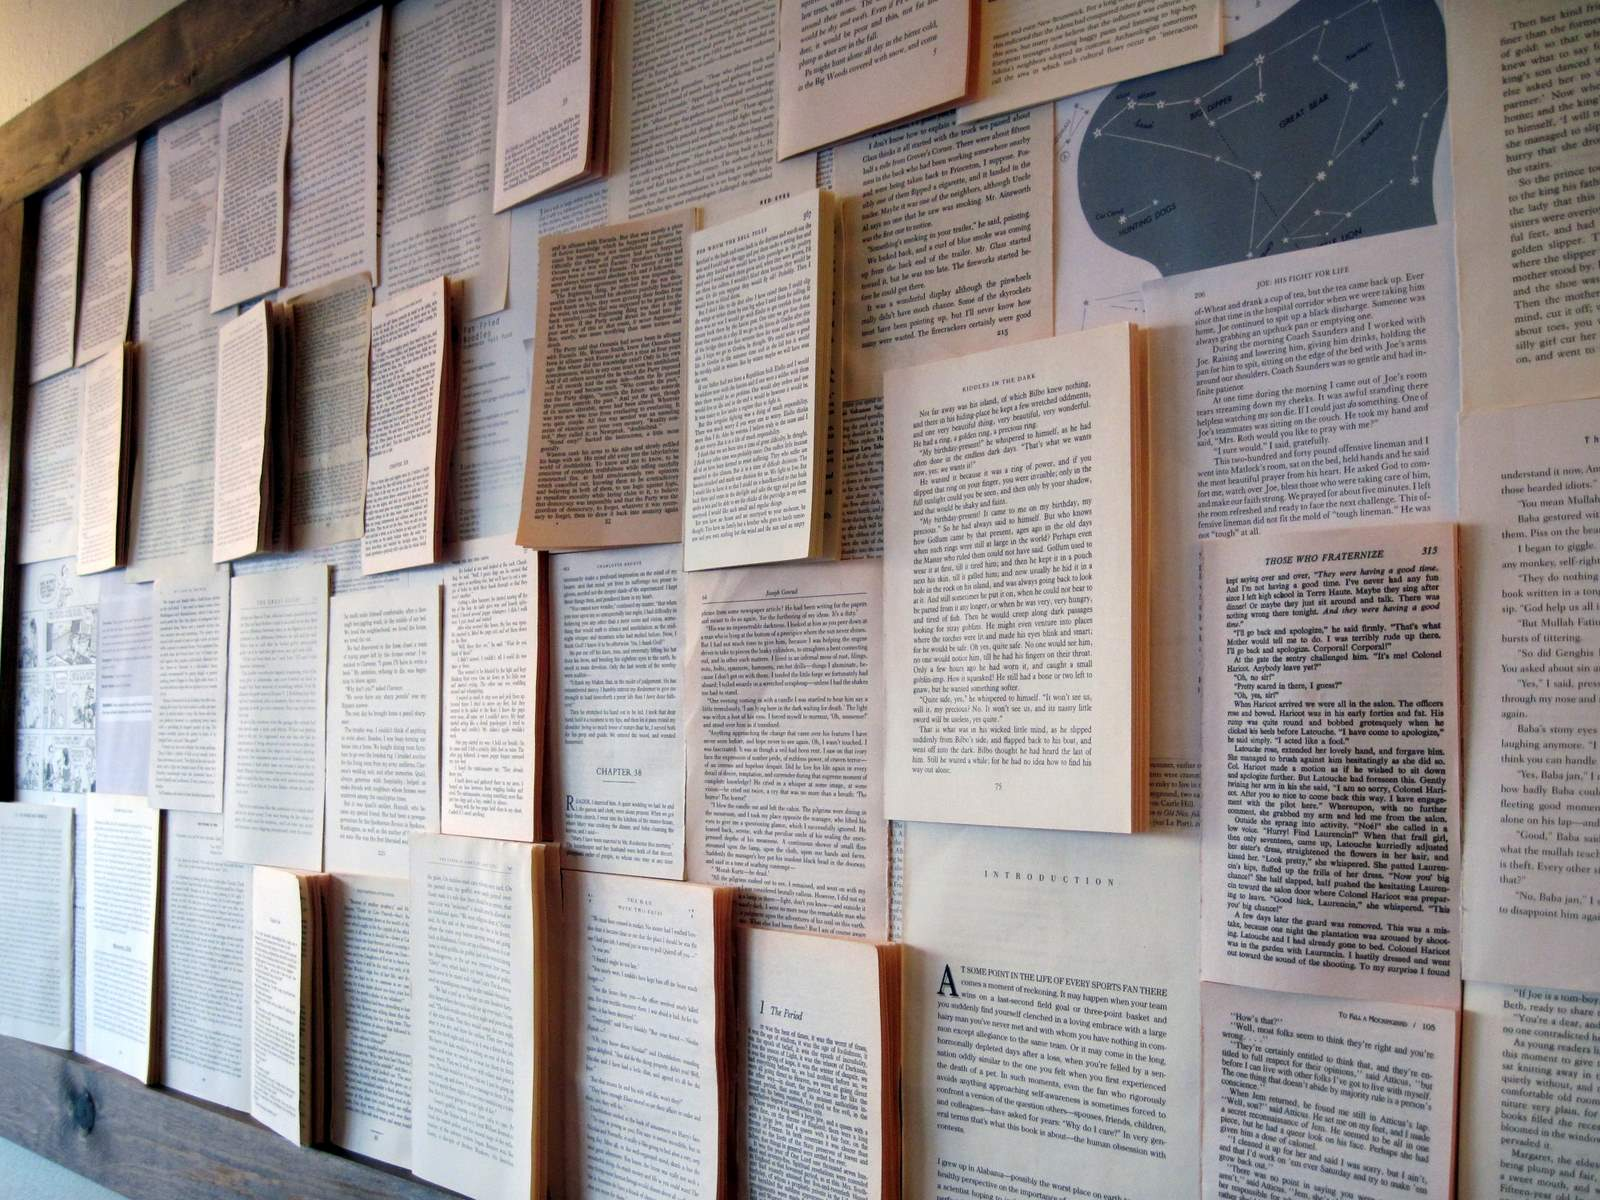 The book project finale almost never clever for Cool wall ideas